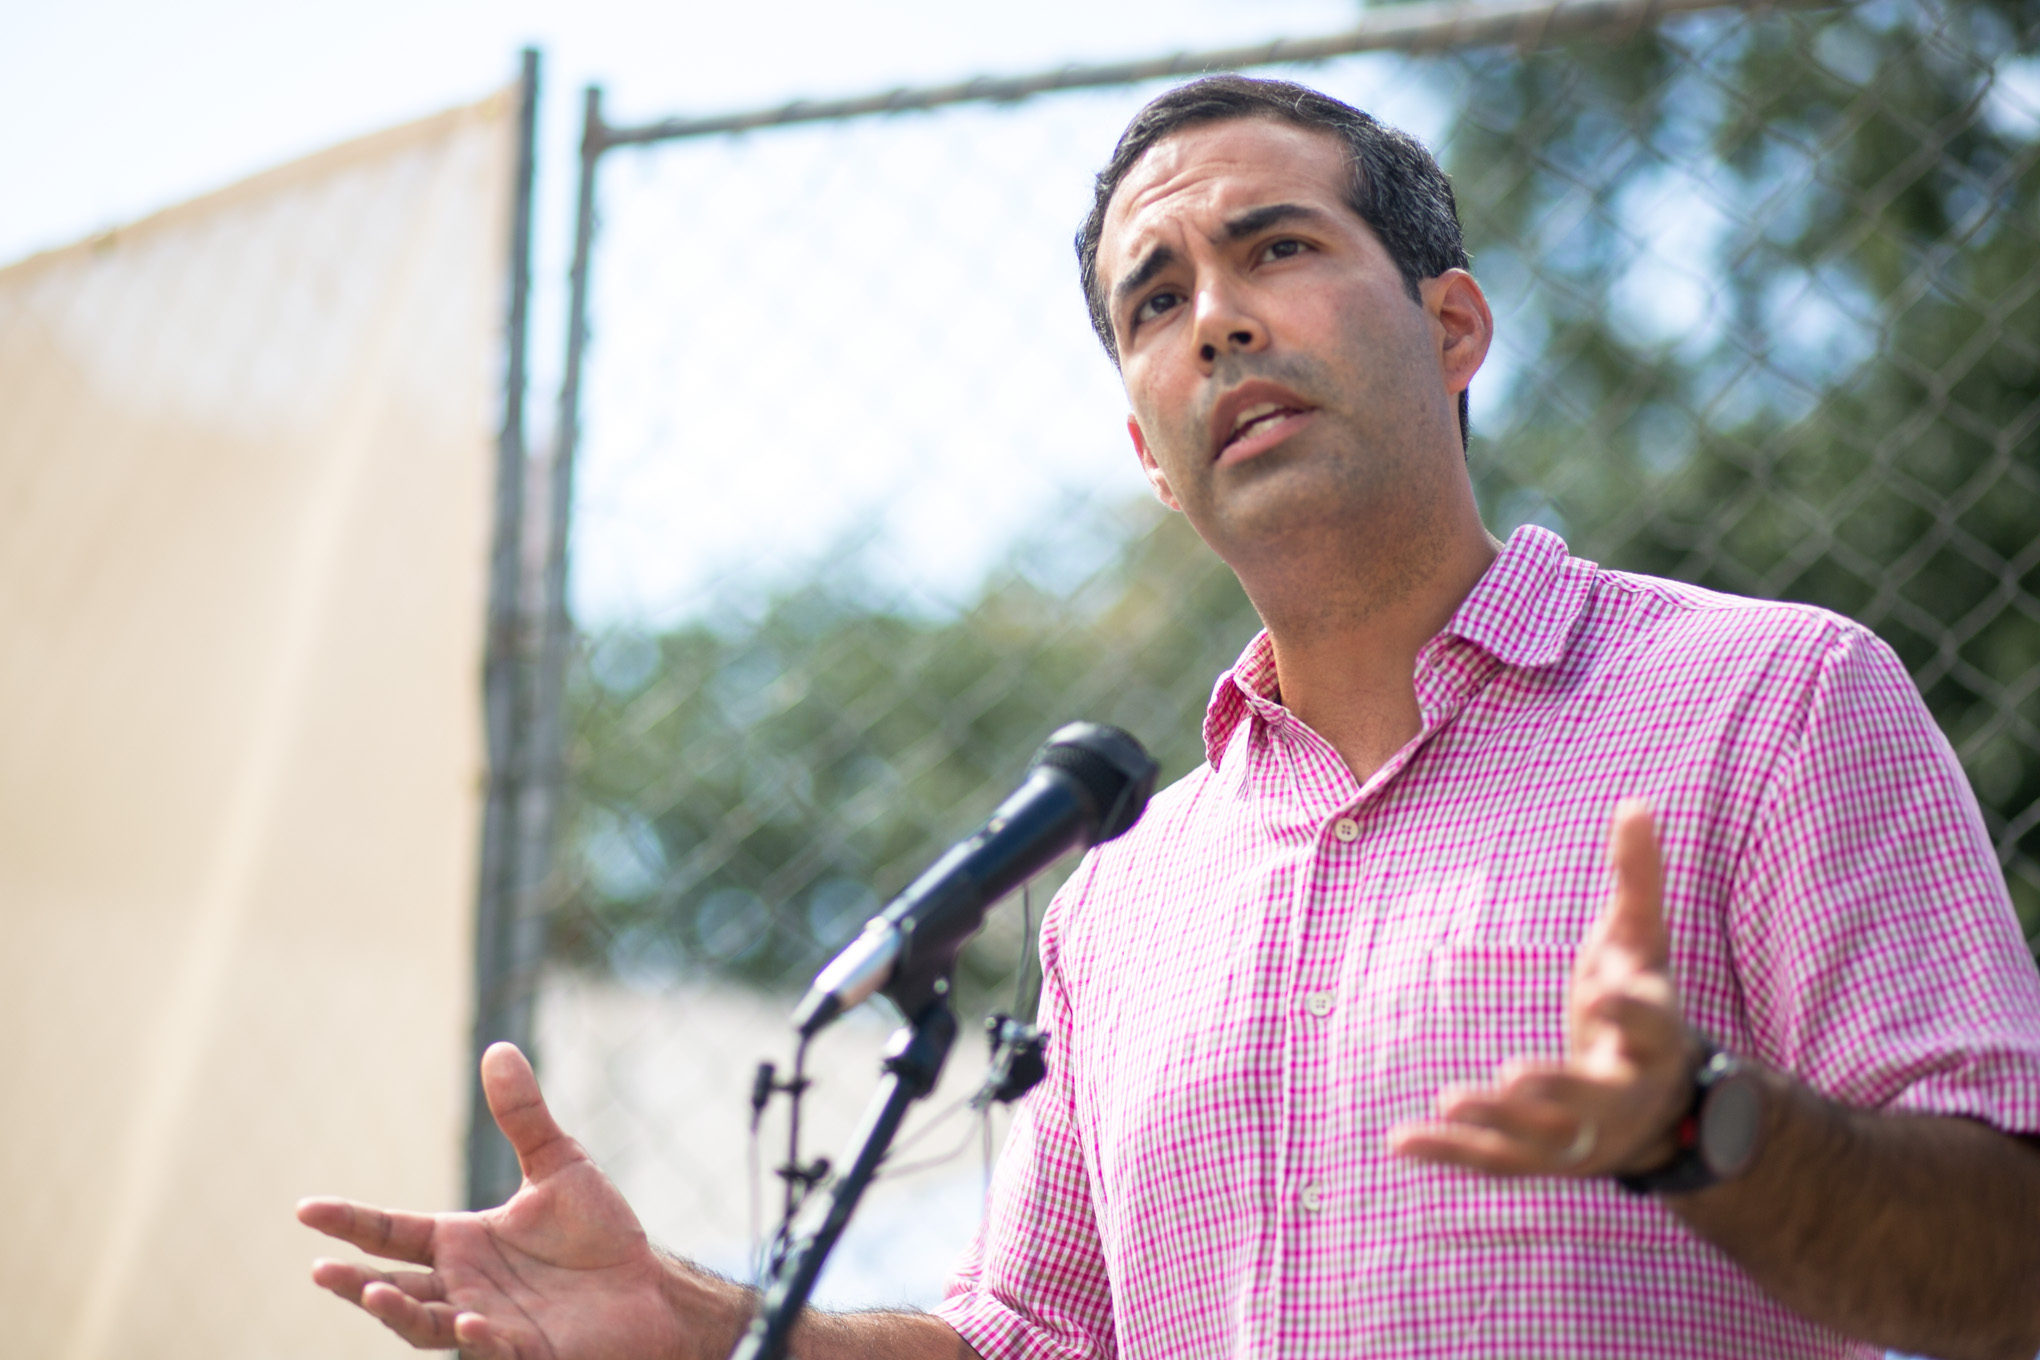 Texas Land Commissioner George P. Bush speaks about the continued development at Alamo Plaza. Photo by Kathryn Boyd-Batstone.